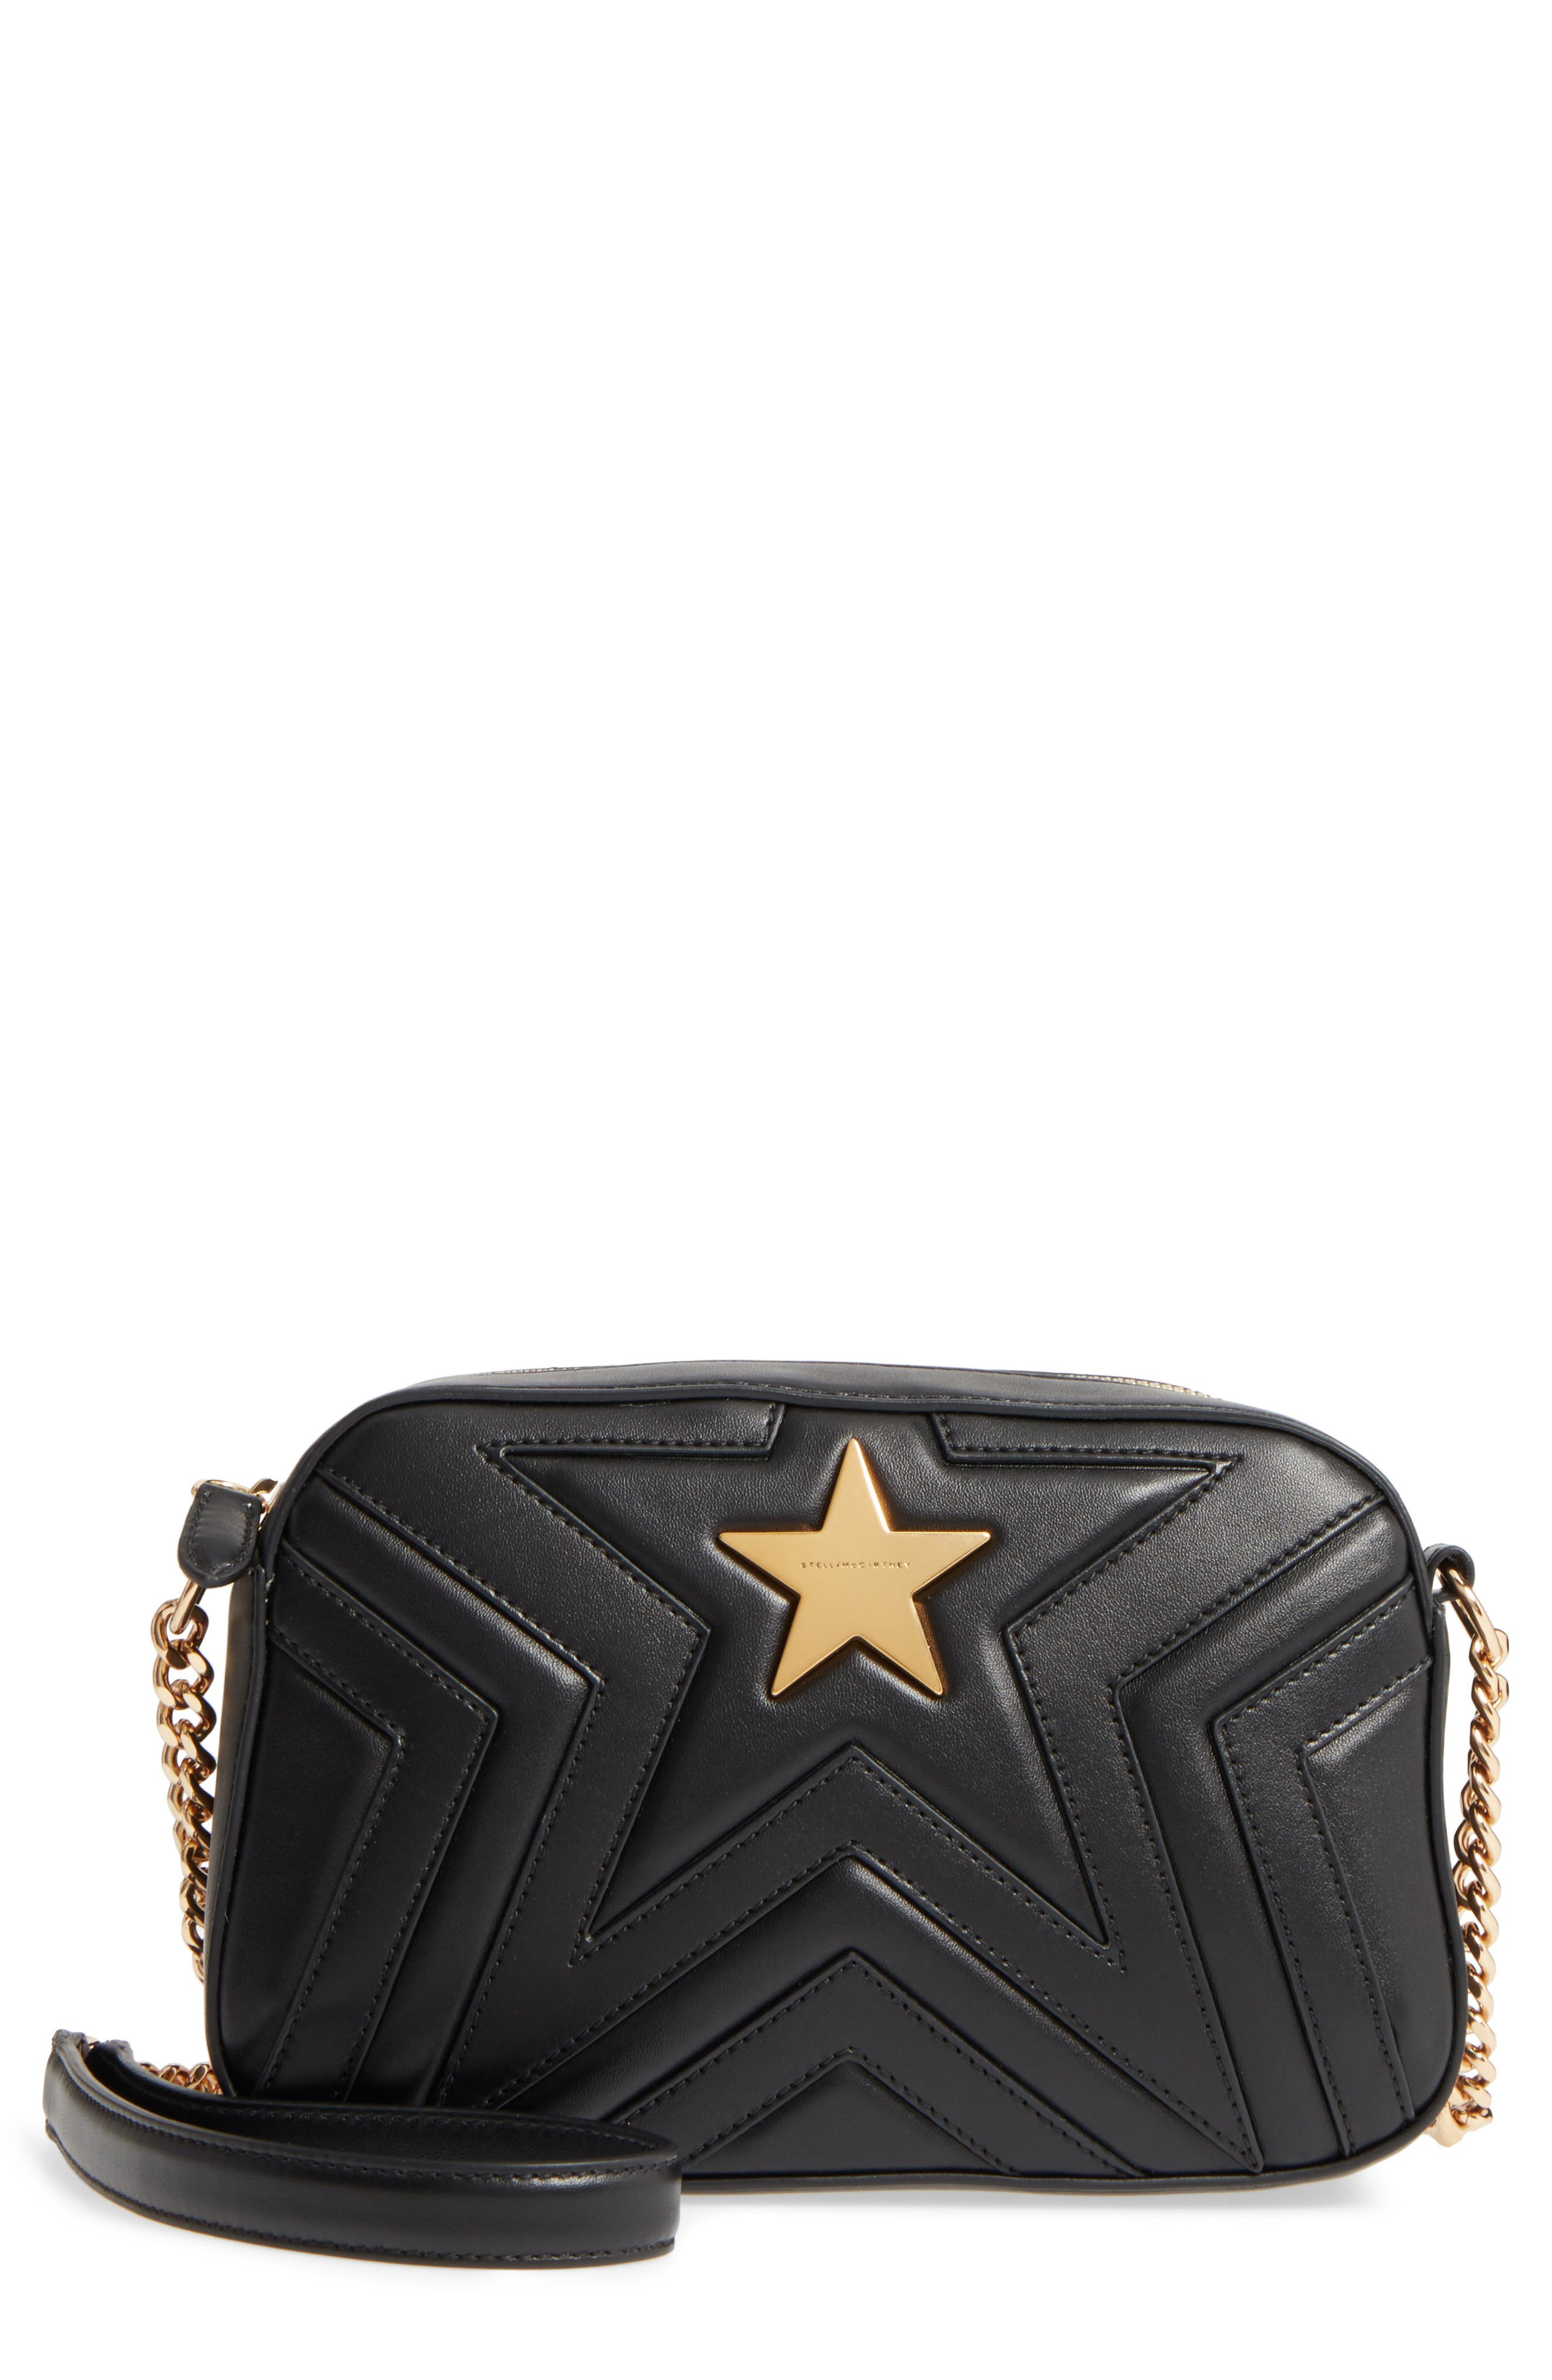 Main Image - Stella McCartney Alter Nappa Faux Leather Shoulder Bag